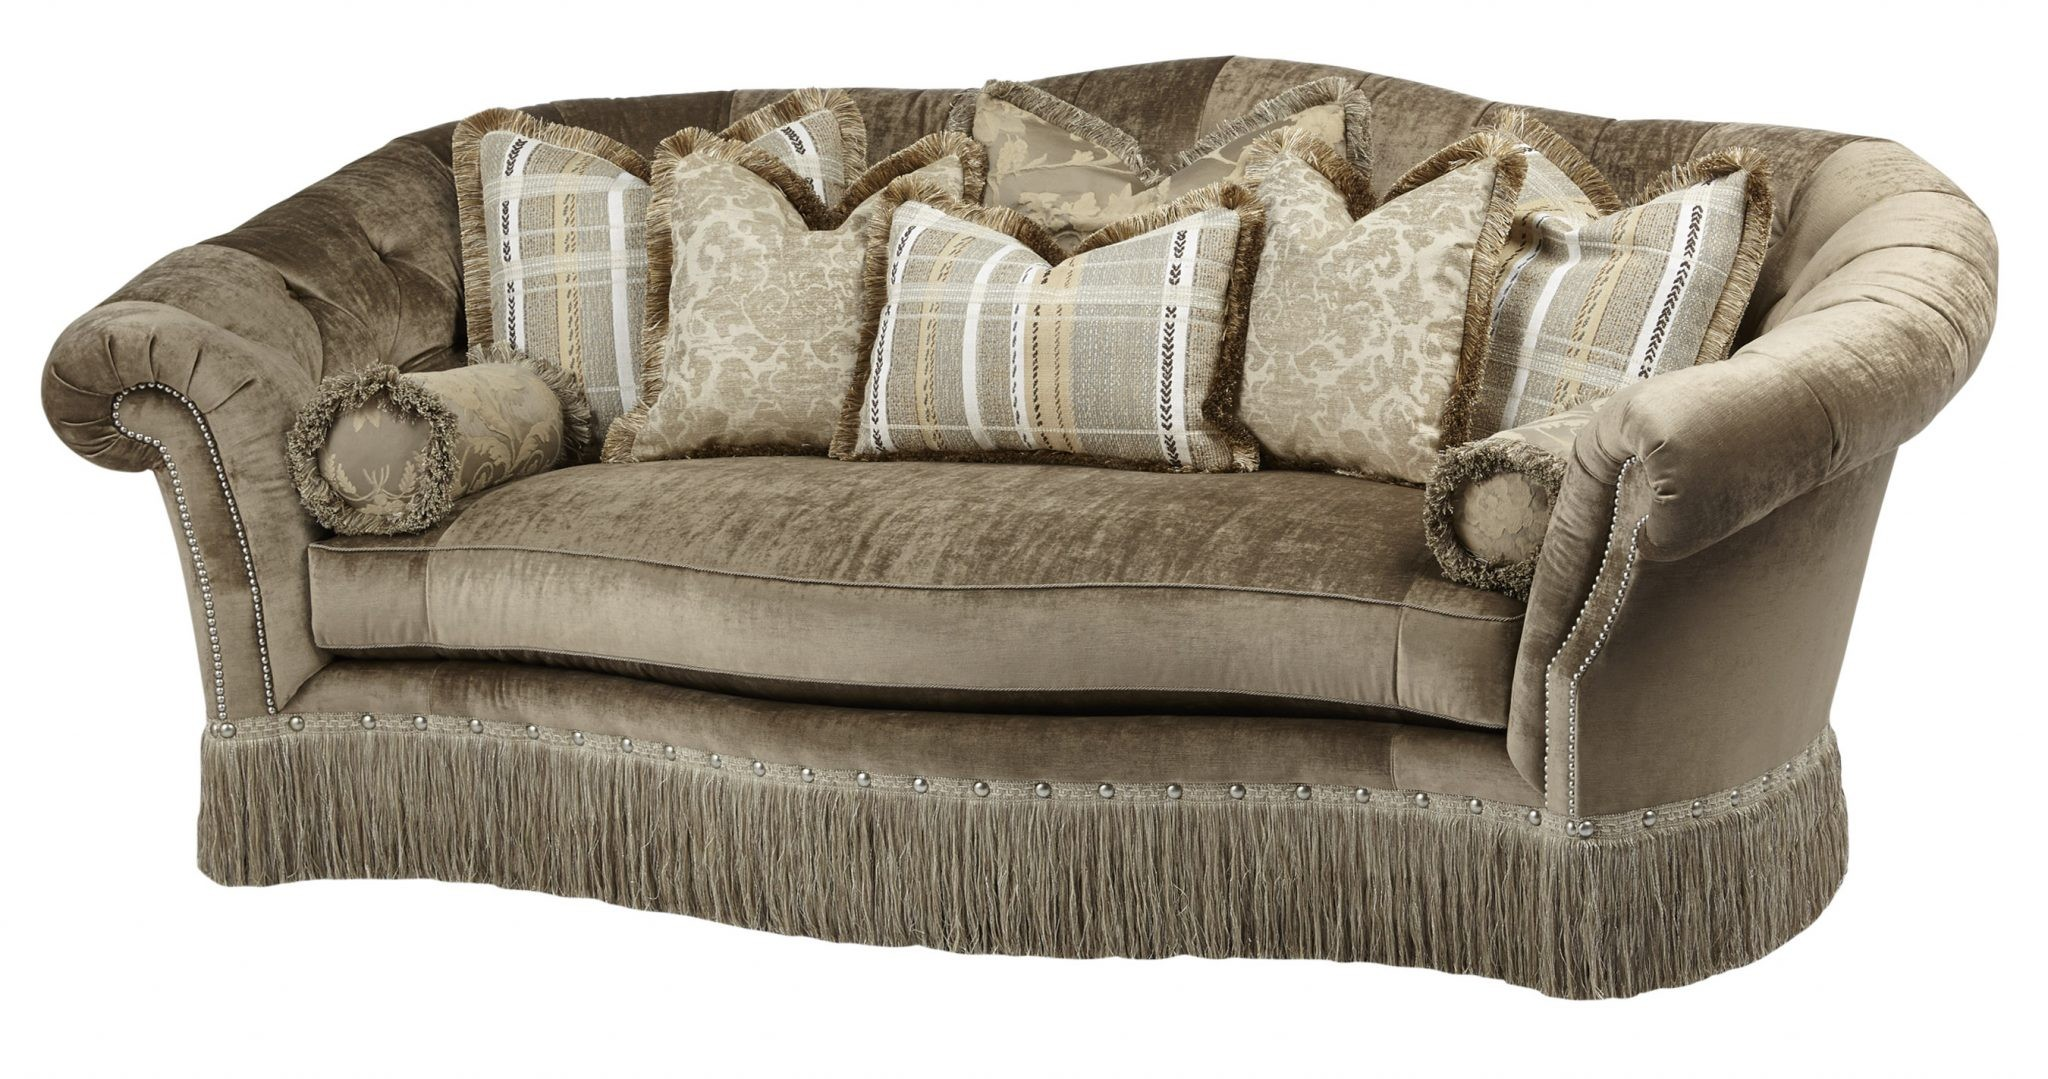 34 Luxury sofa High style furniture The best of online shopping